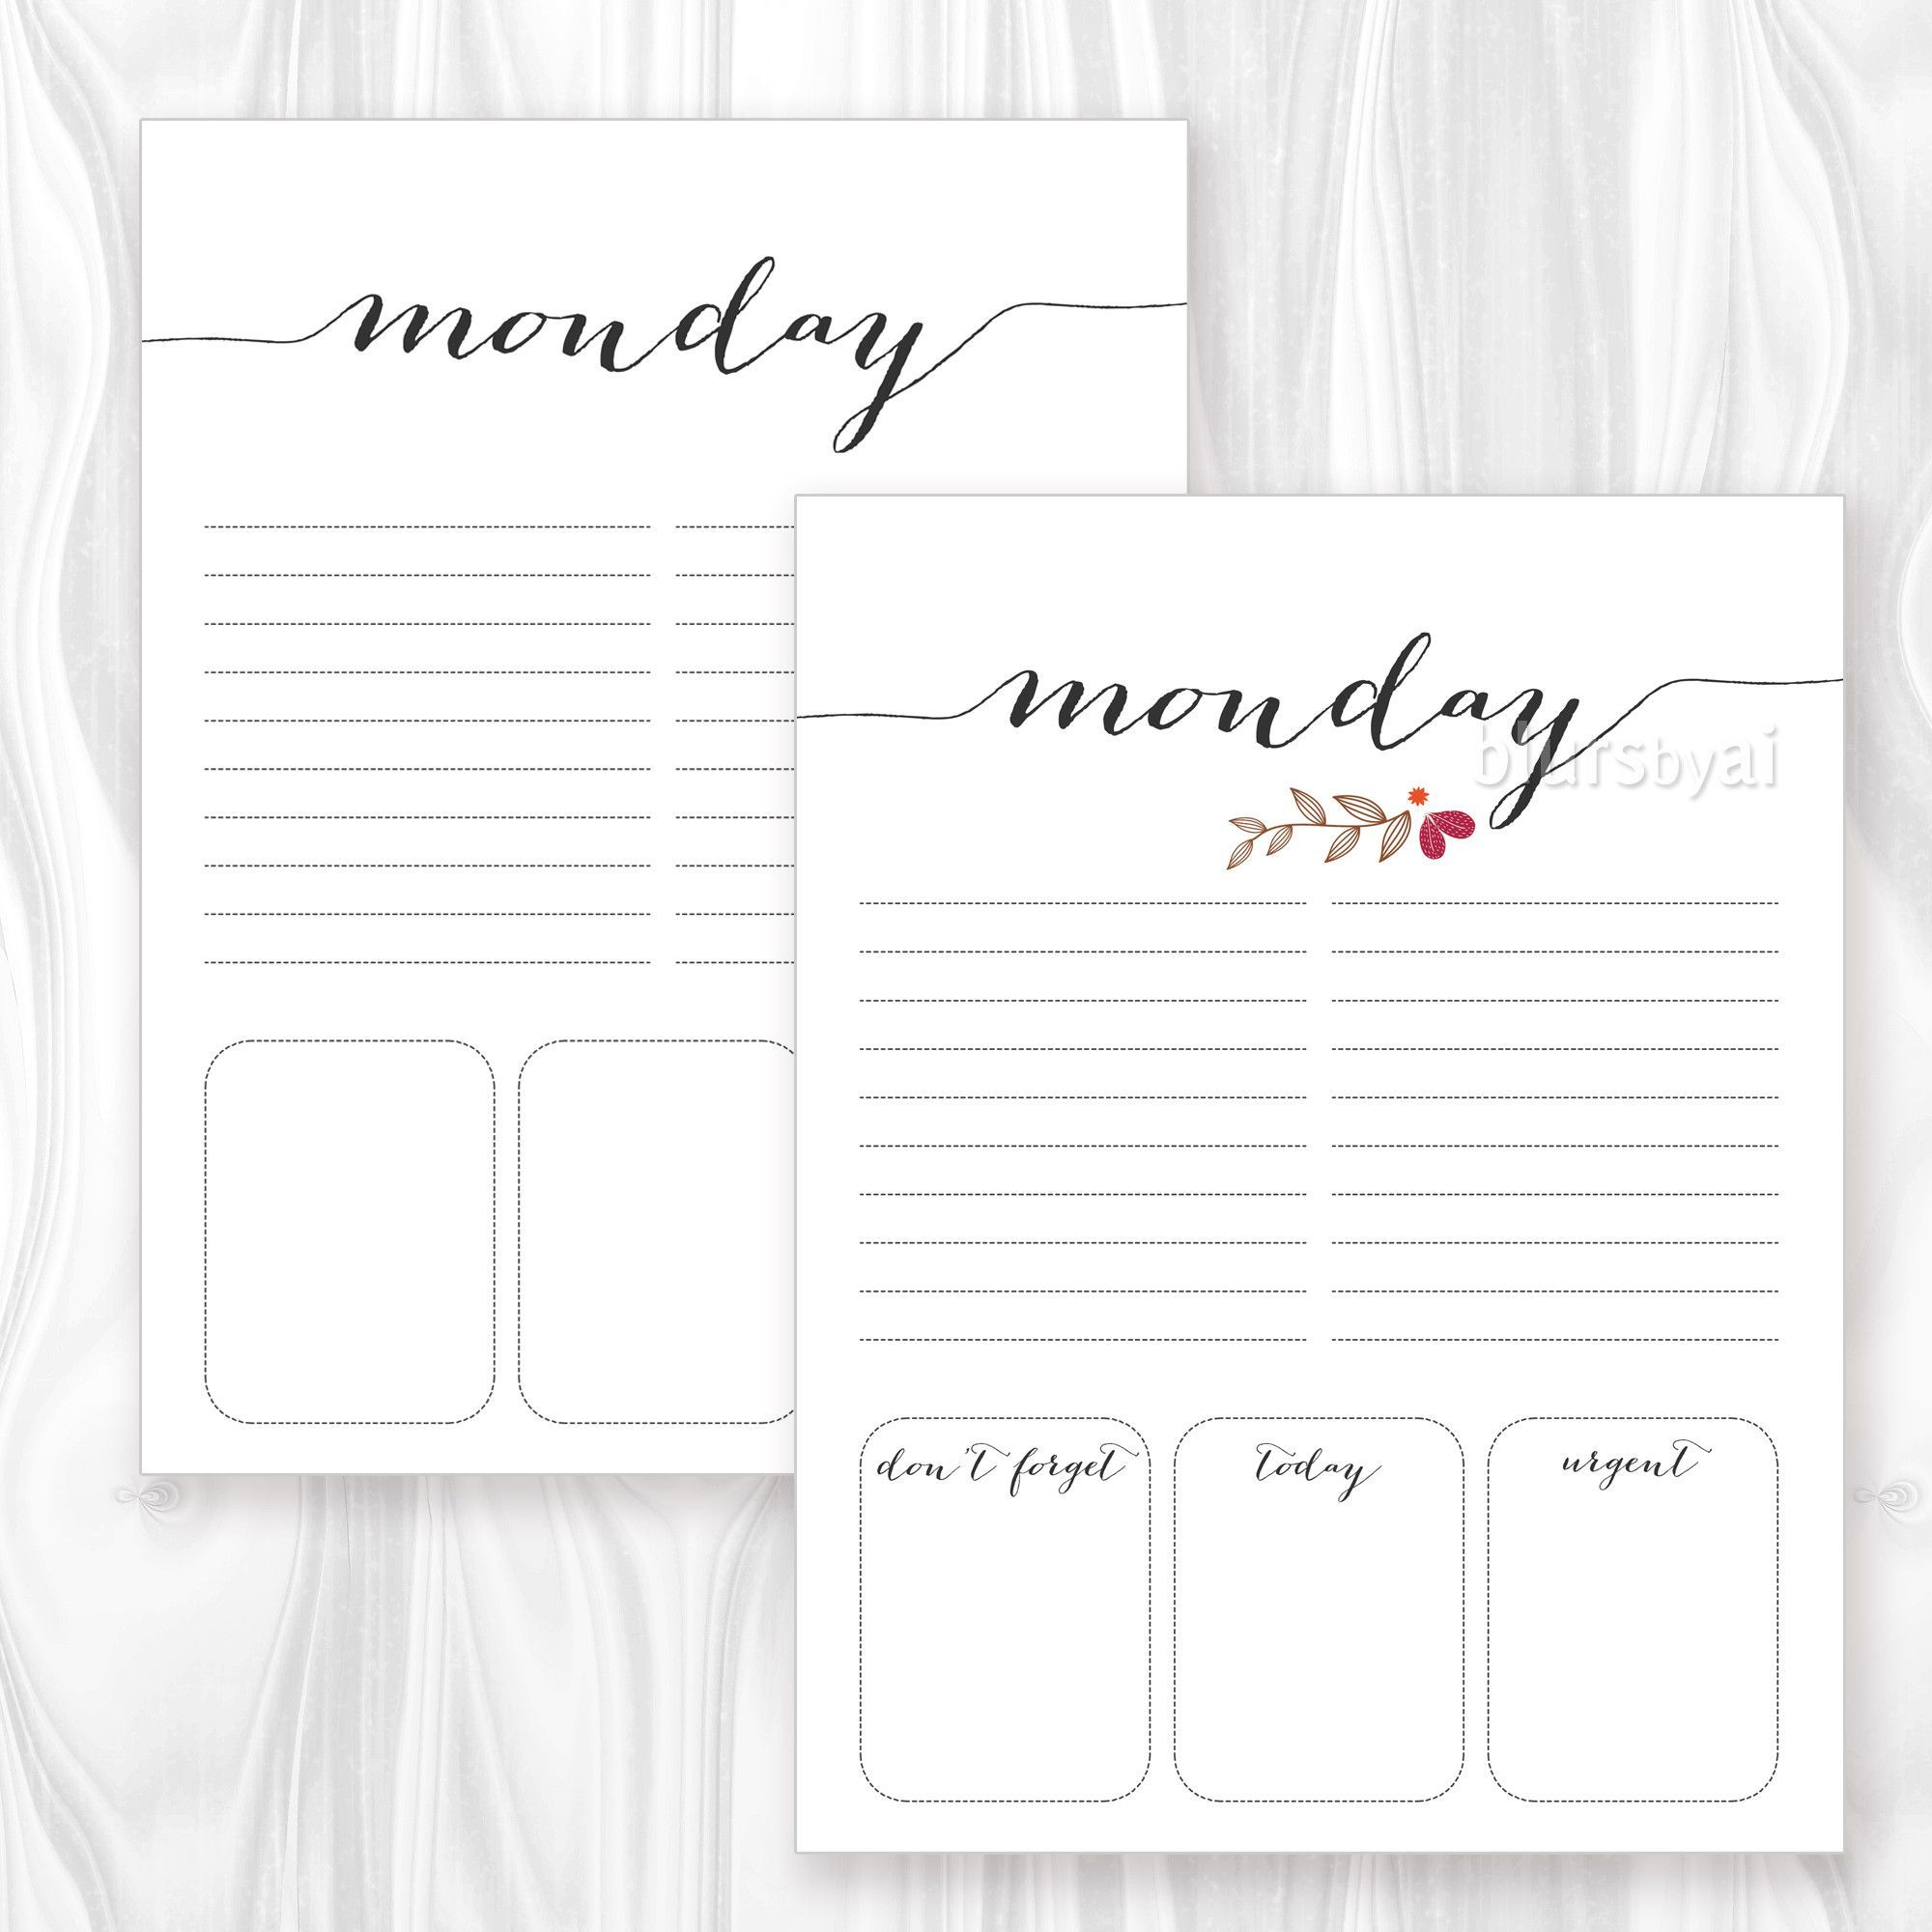 Printable Daily Planner Or To Do List Featuring Floral